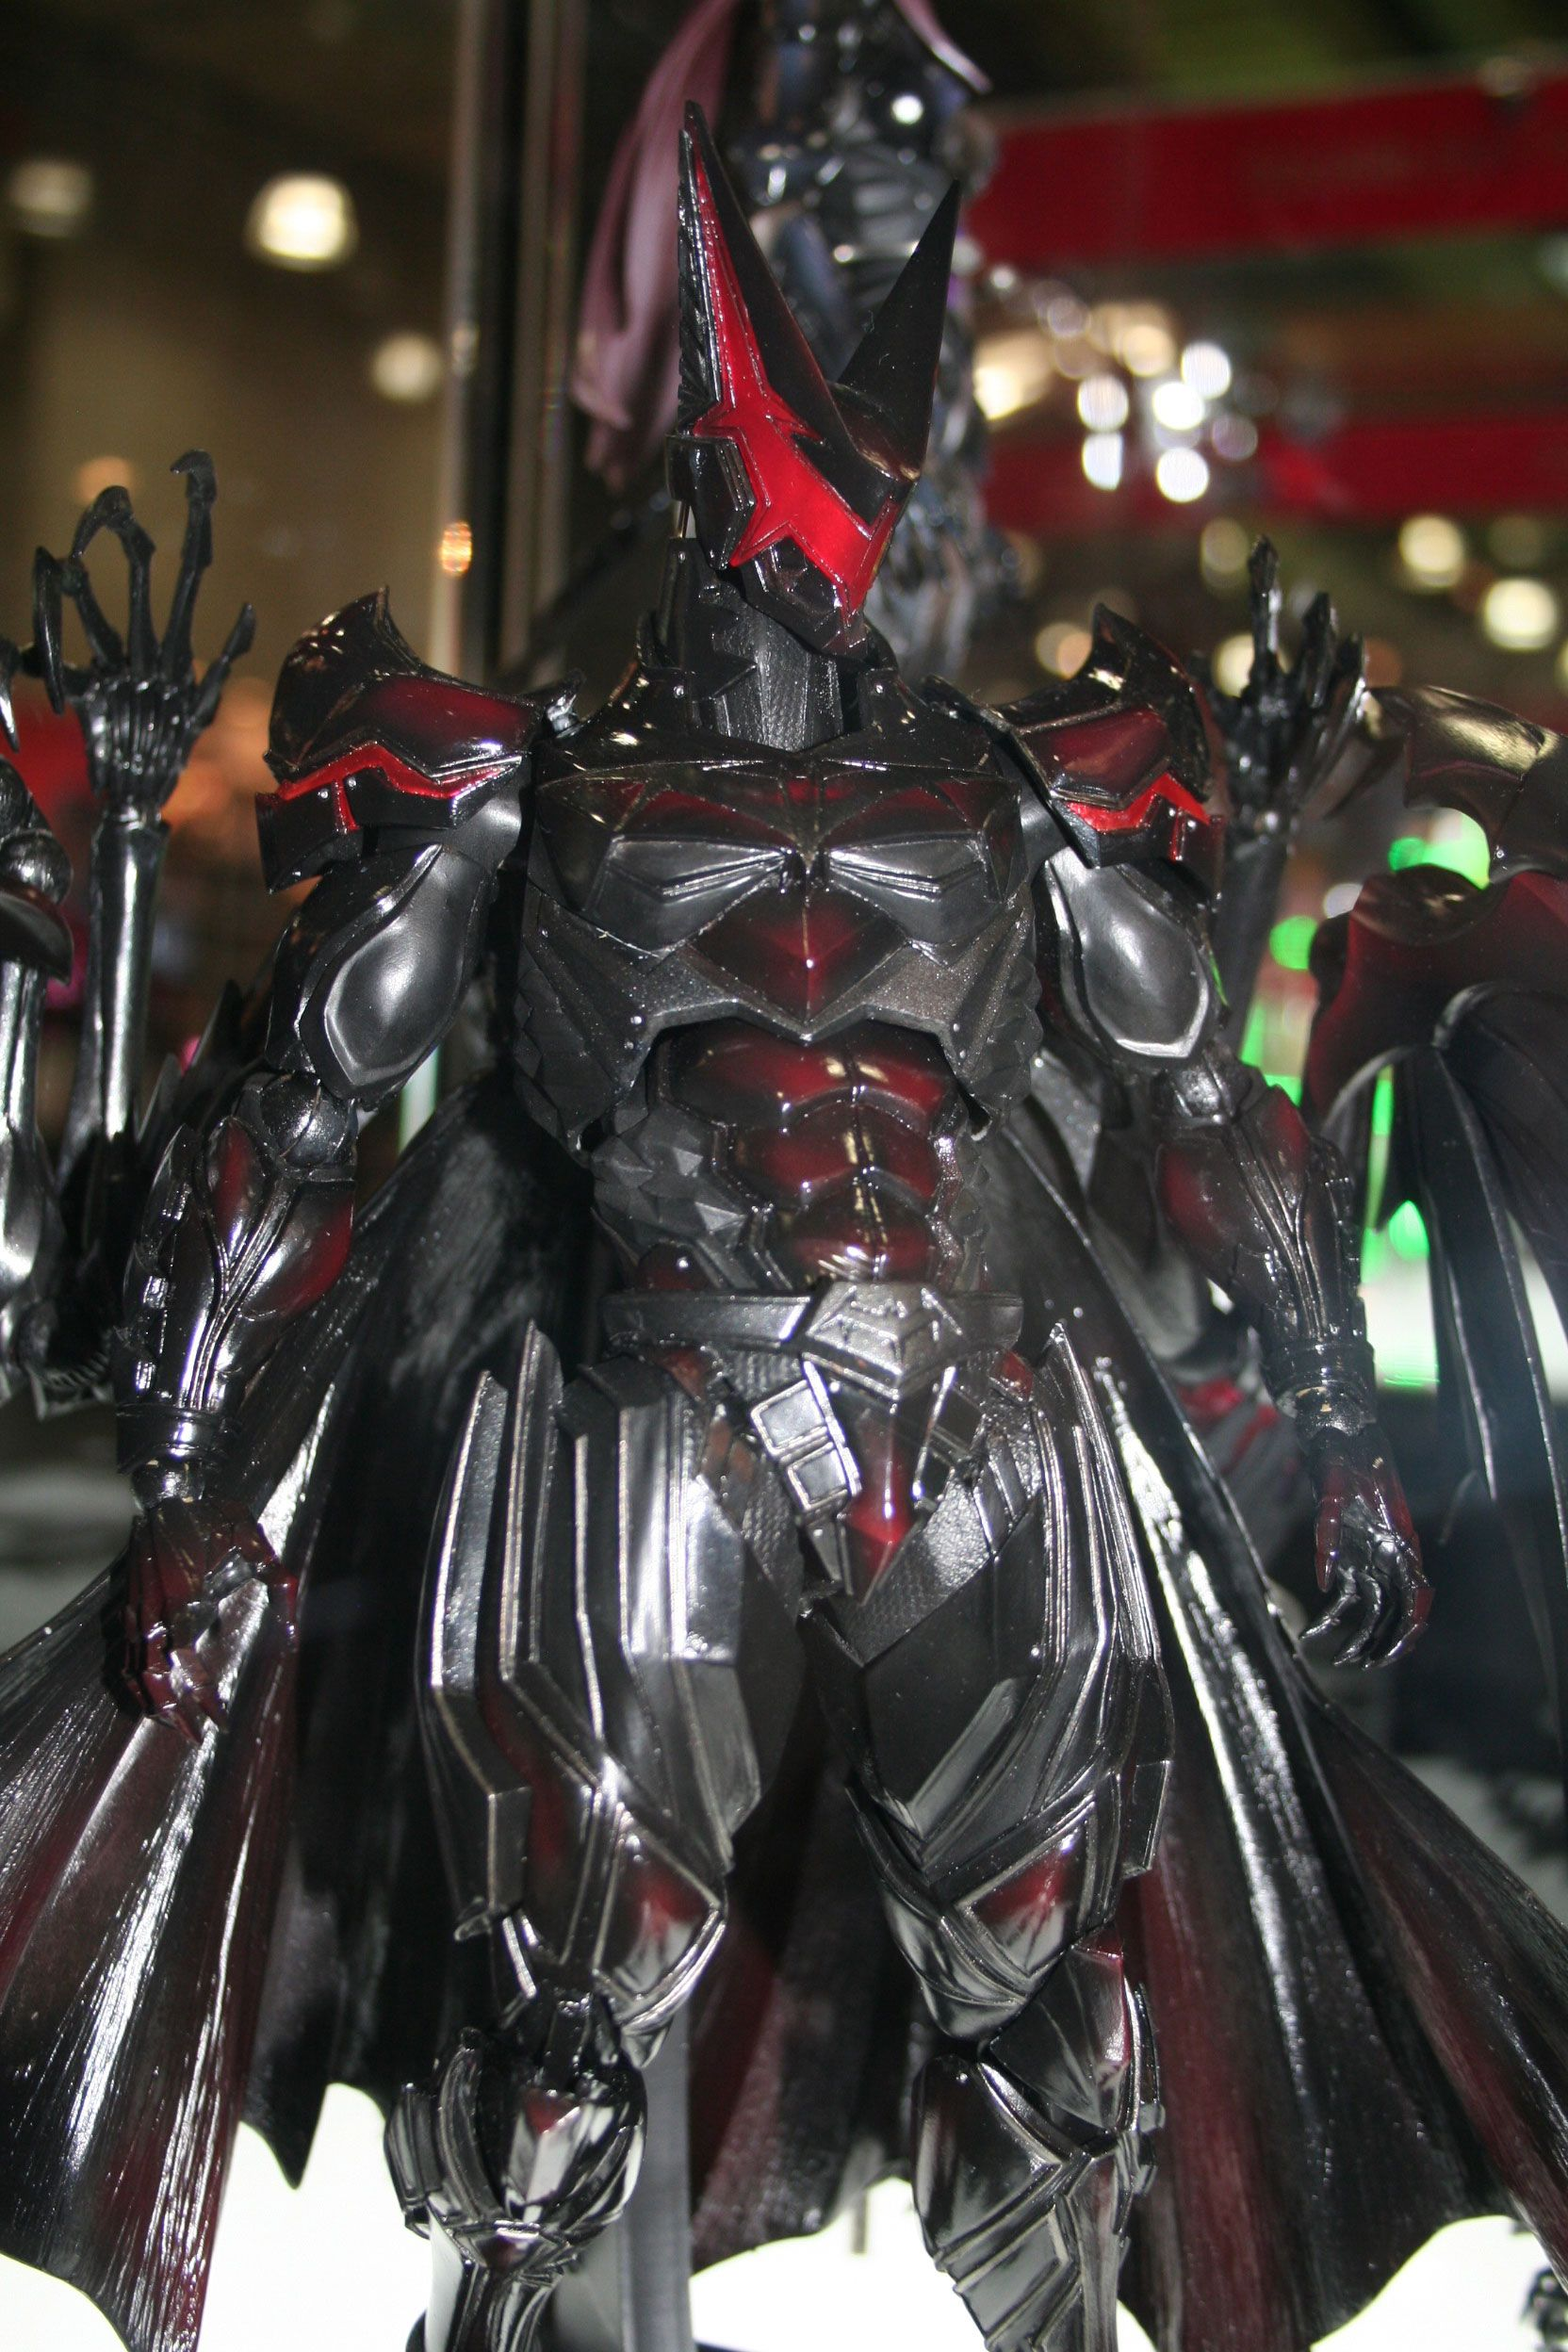 new dc toys revealed at toy fair 2015 including harley